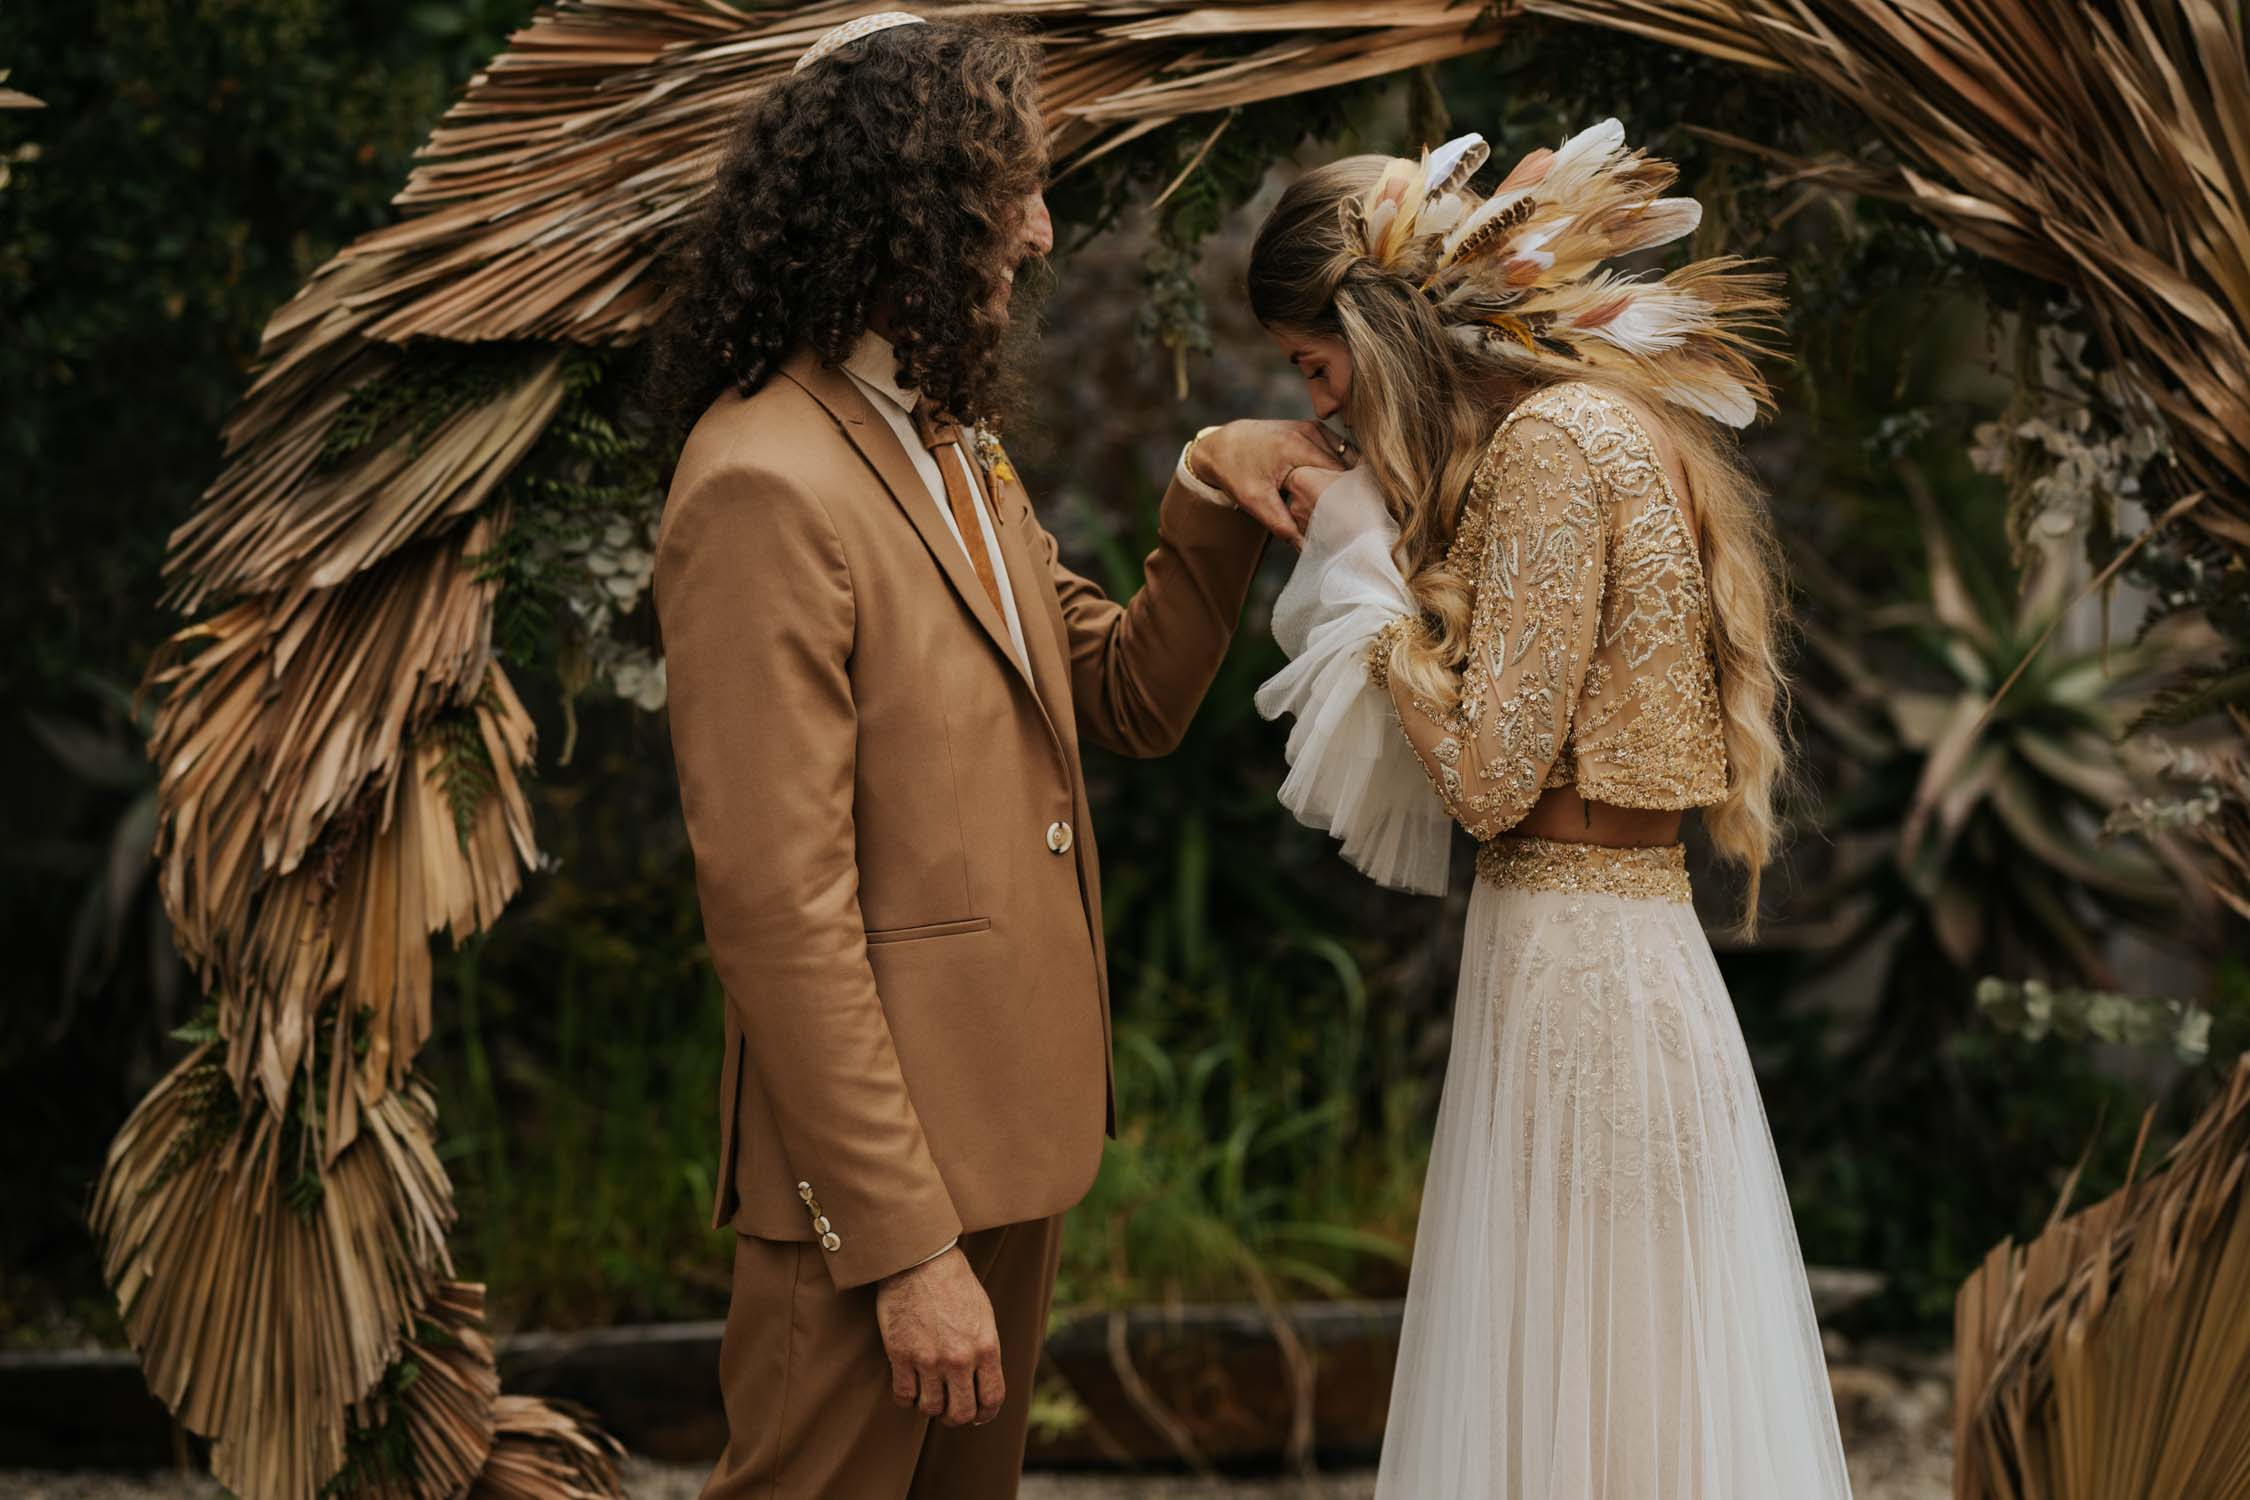 Incredible gorgeous long curly haired bohemian gypsy bride kisses groom's hand in front of dried grass circle wedding arch at Emily Moon, Plett Wedding Venue